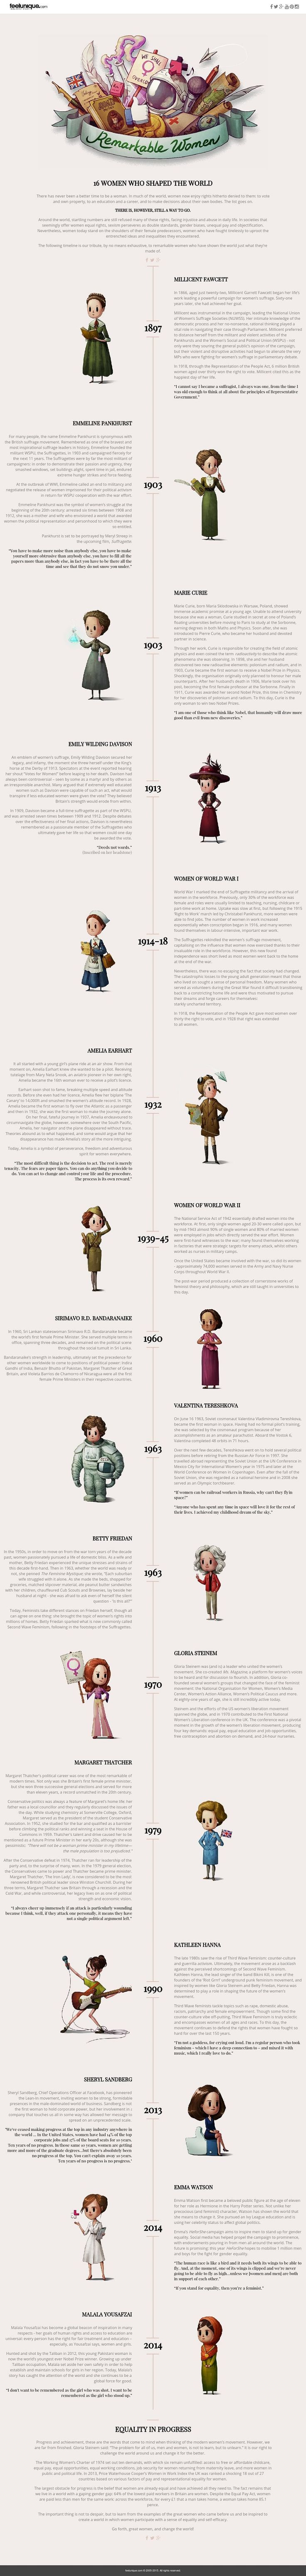 16 Remarkable Women Who Shaped The World